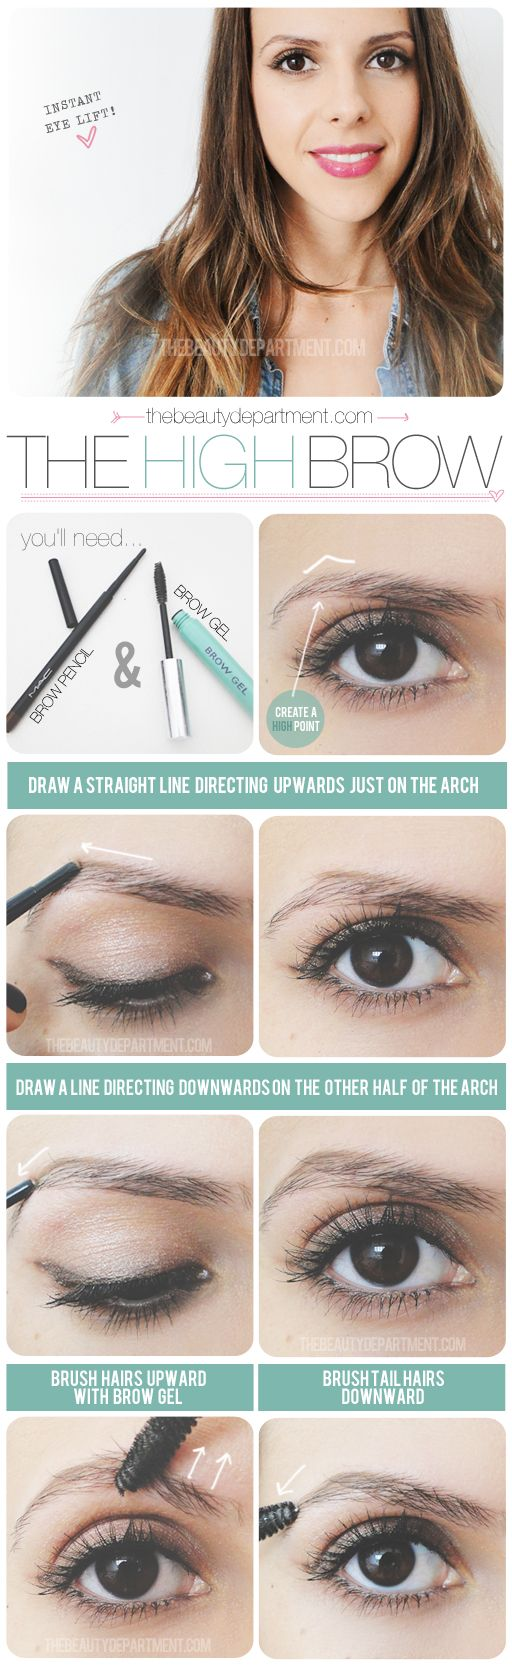 thebeautydepartment.com high brow -- using brow gel can train your brows to grow in direction you want them to. #xovain